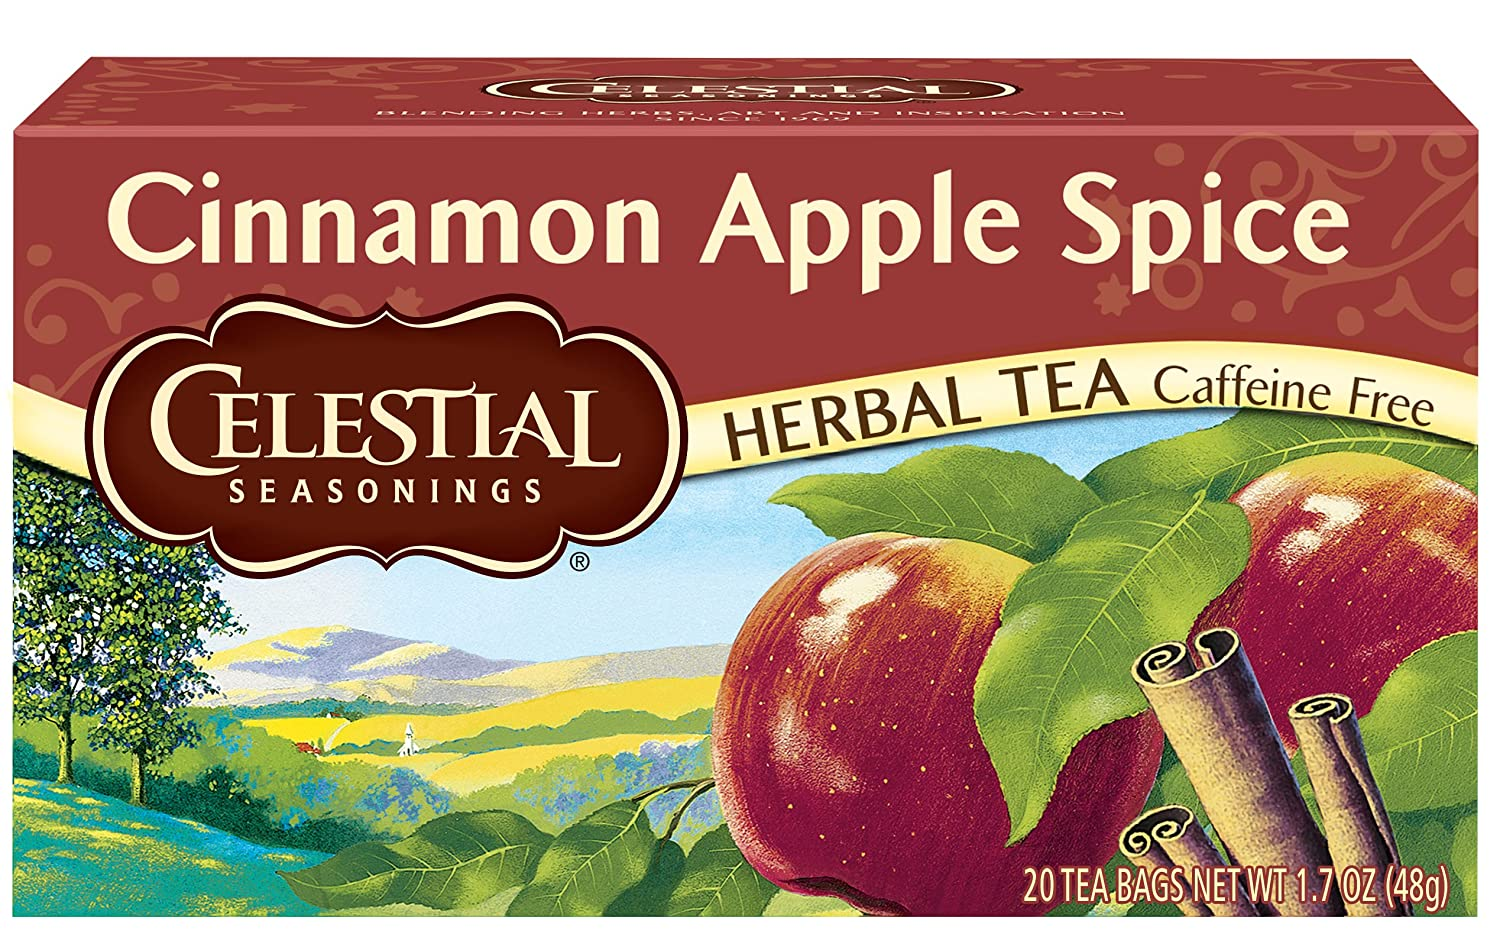 Celestial Seasonings Herbal Tea, Cinnamon Apple Spice